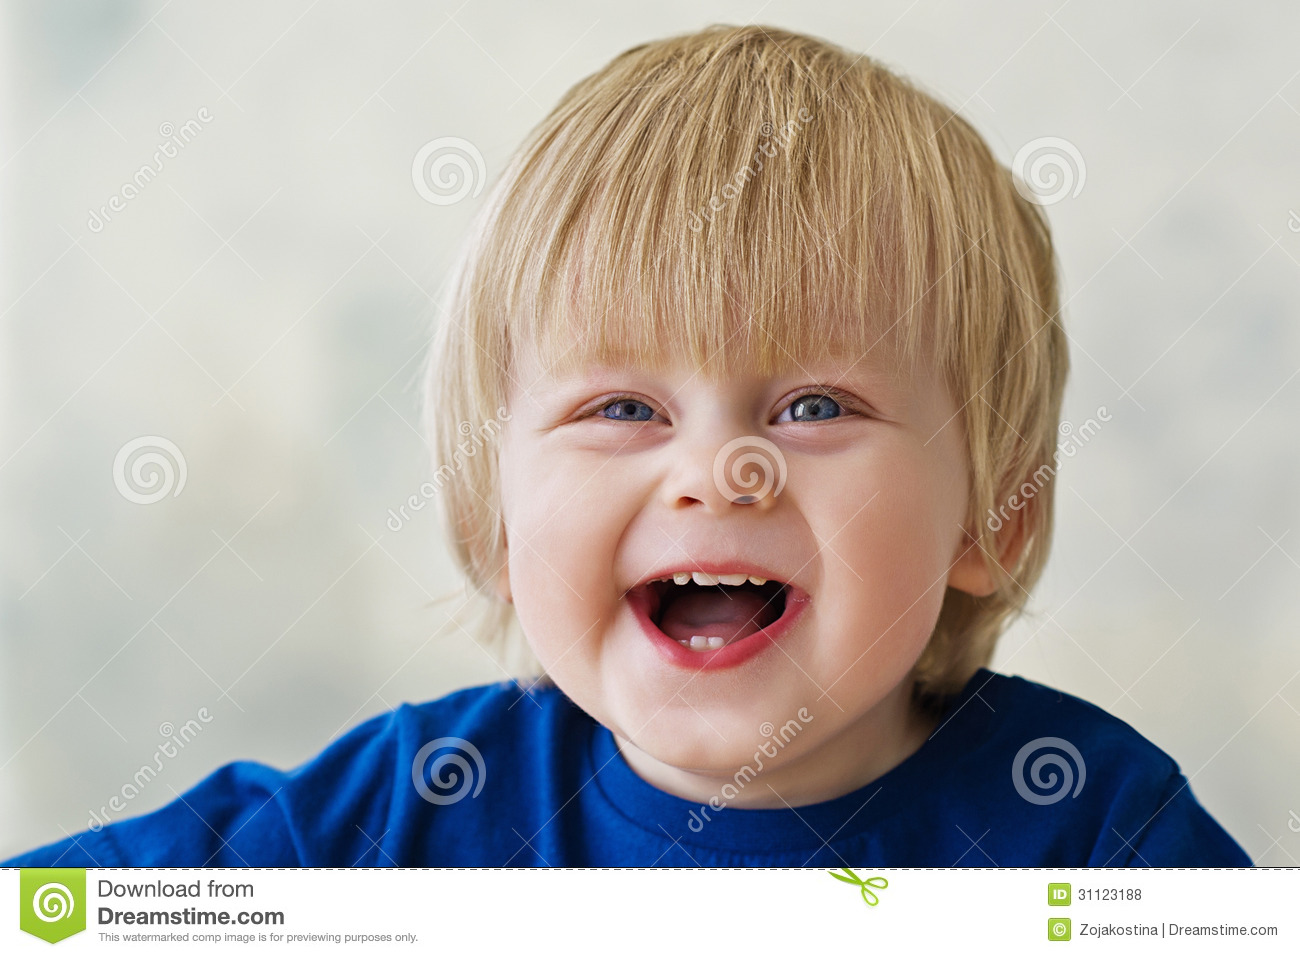 Laughing Boys Portrait Stock Photo | Getty Images